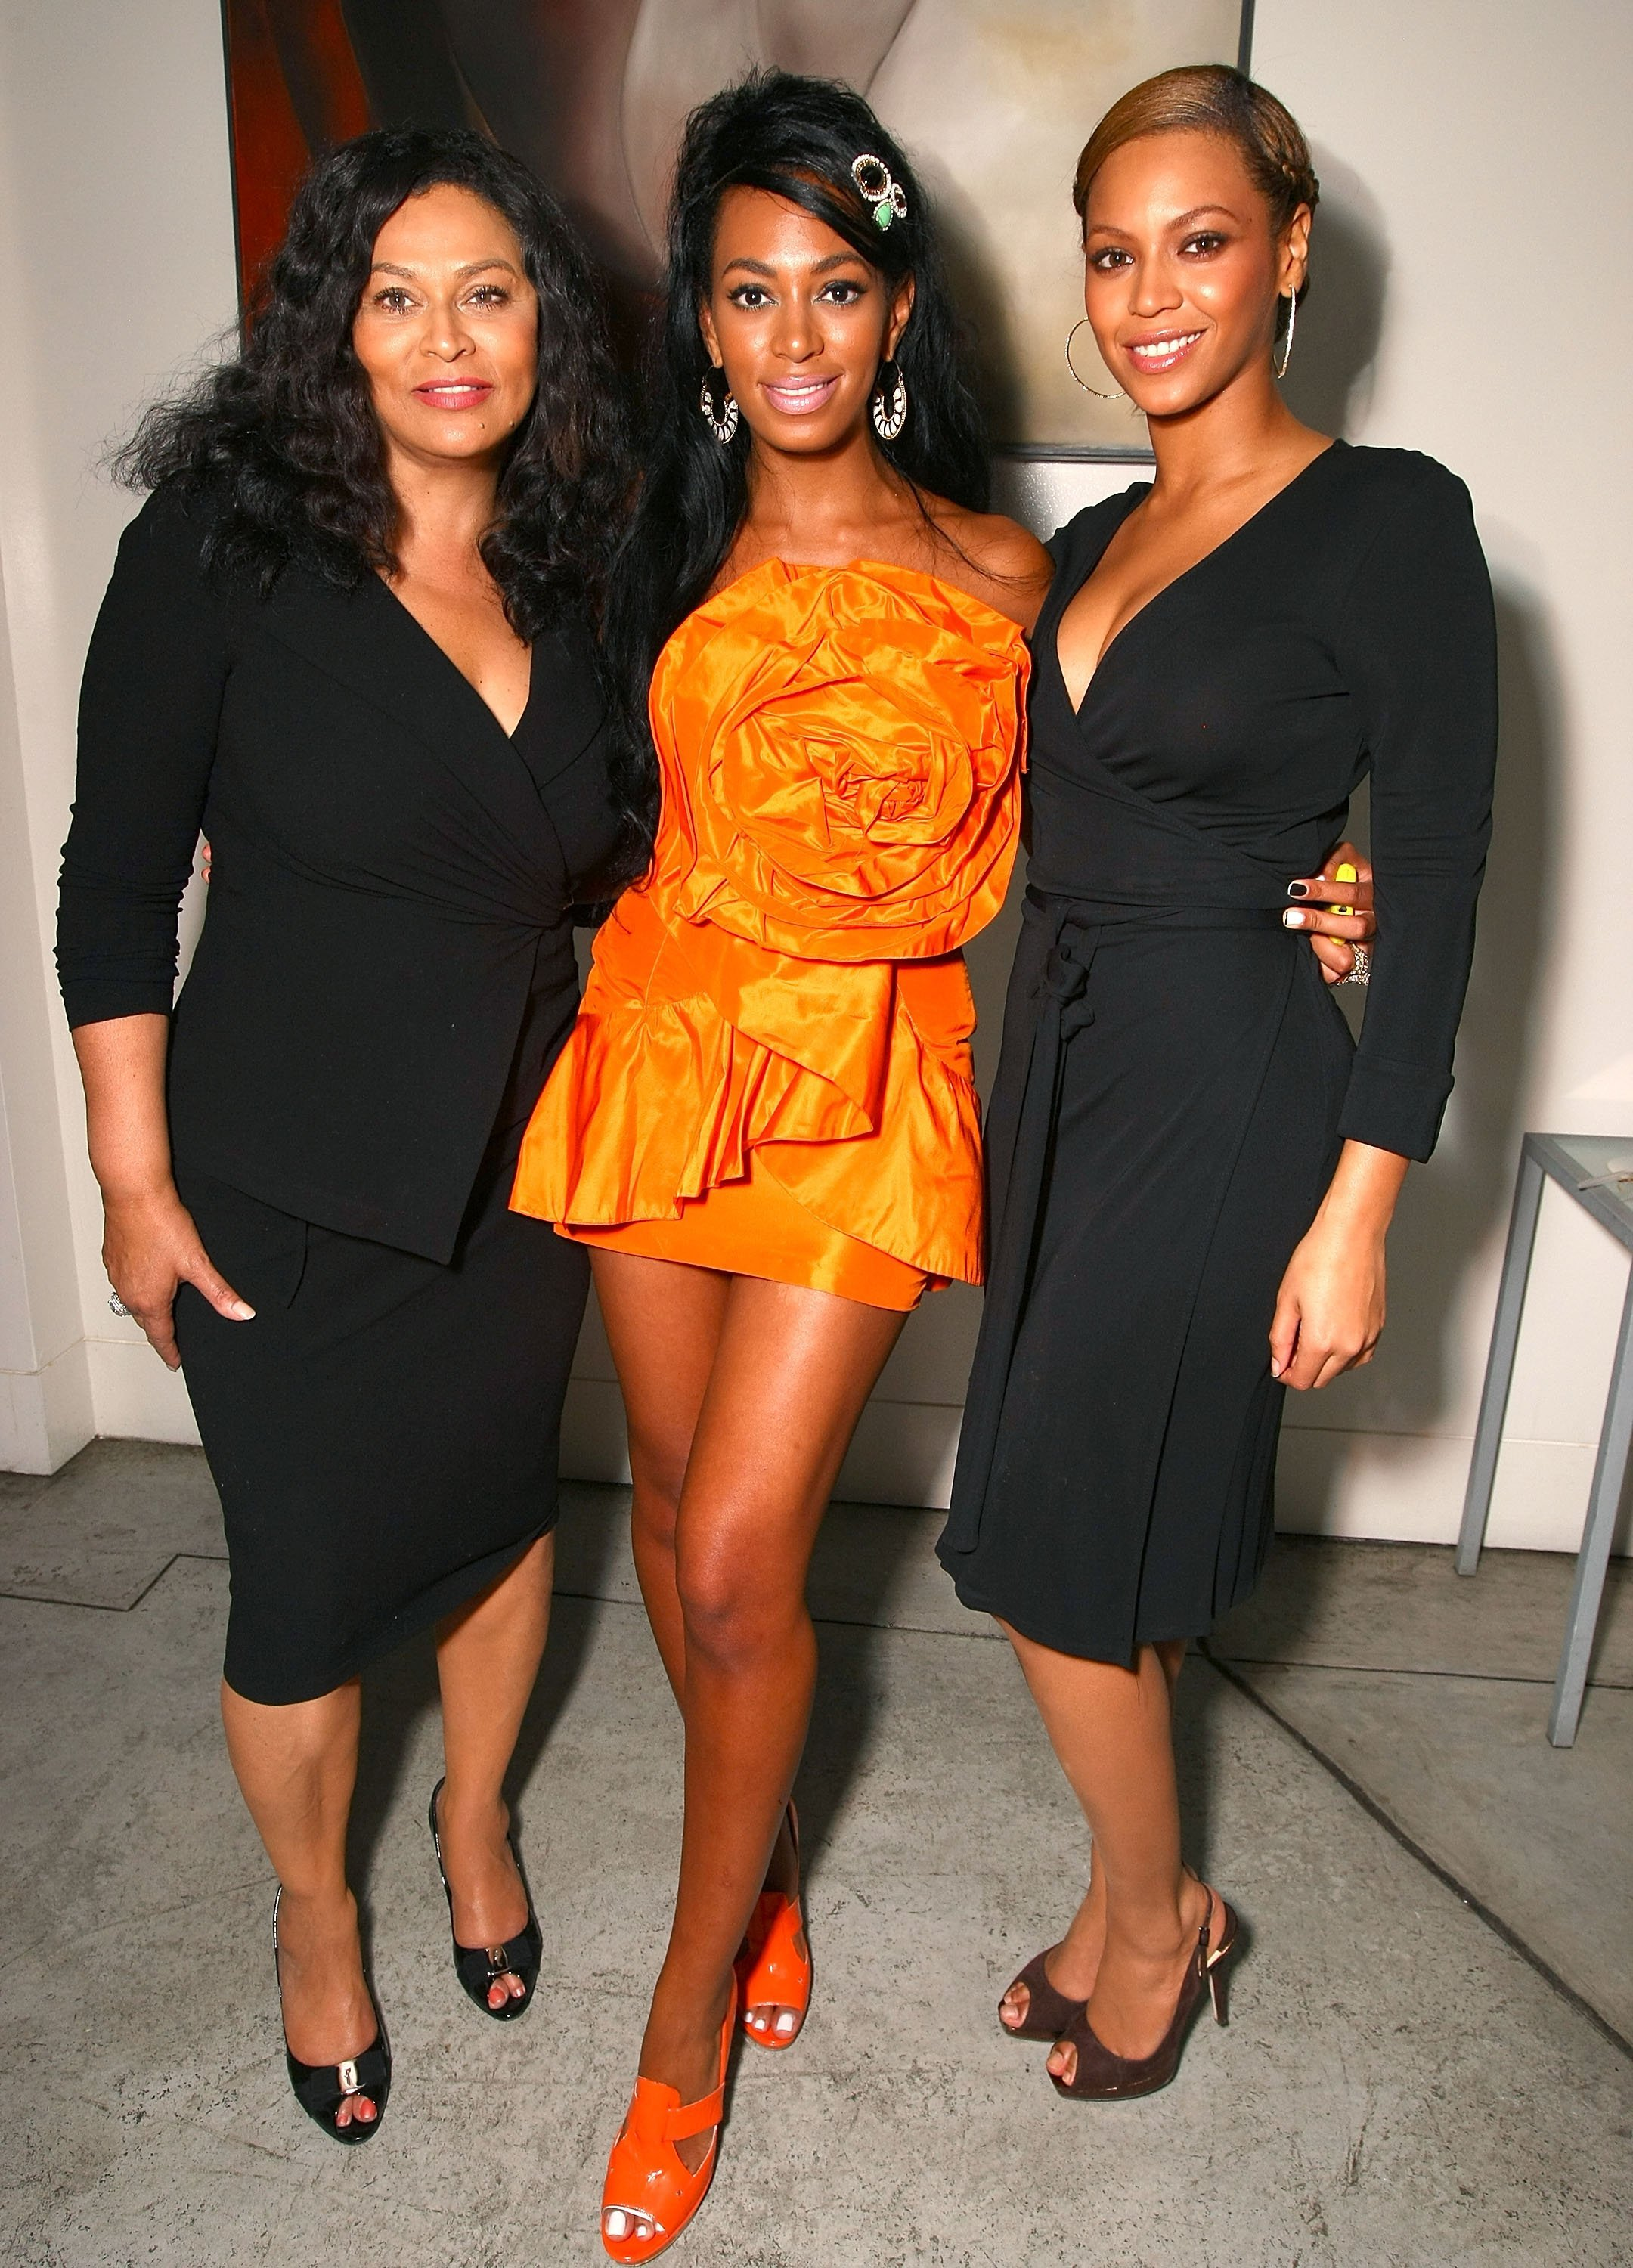 Tina Knowles stands between daughters Solange and Beyonce | Photo: Getty Images